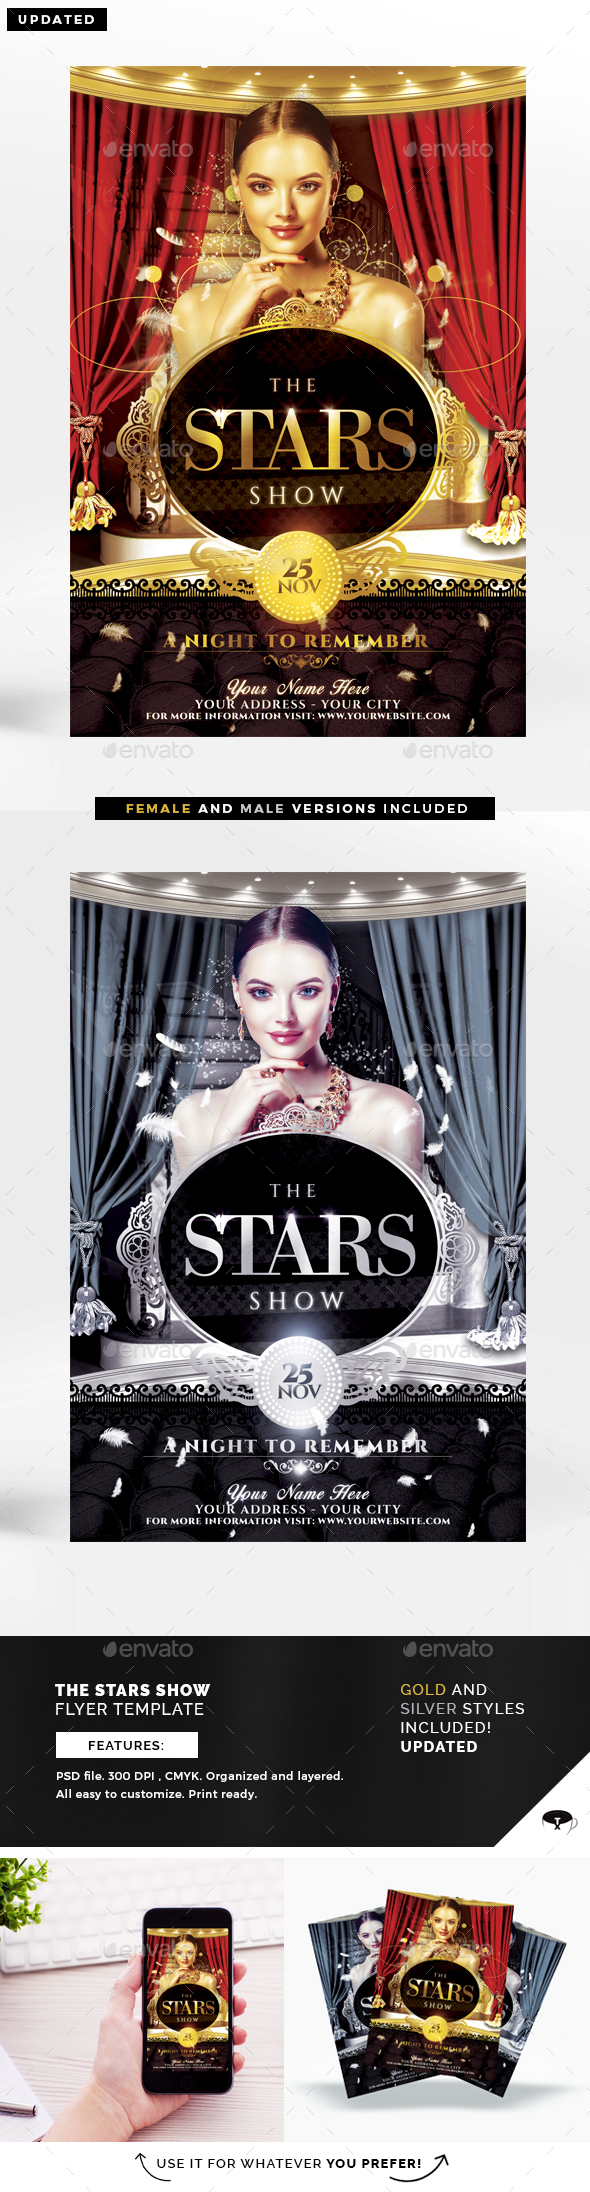 The Stars Show Flyer Template - Clubs & Parties Events